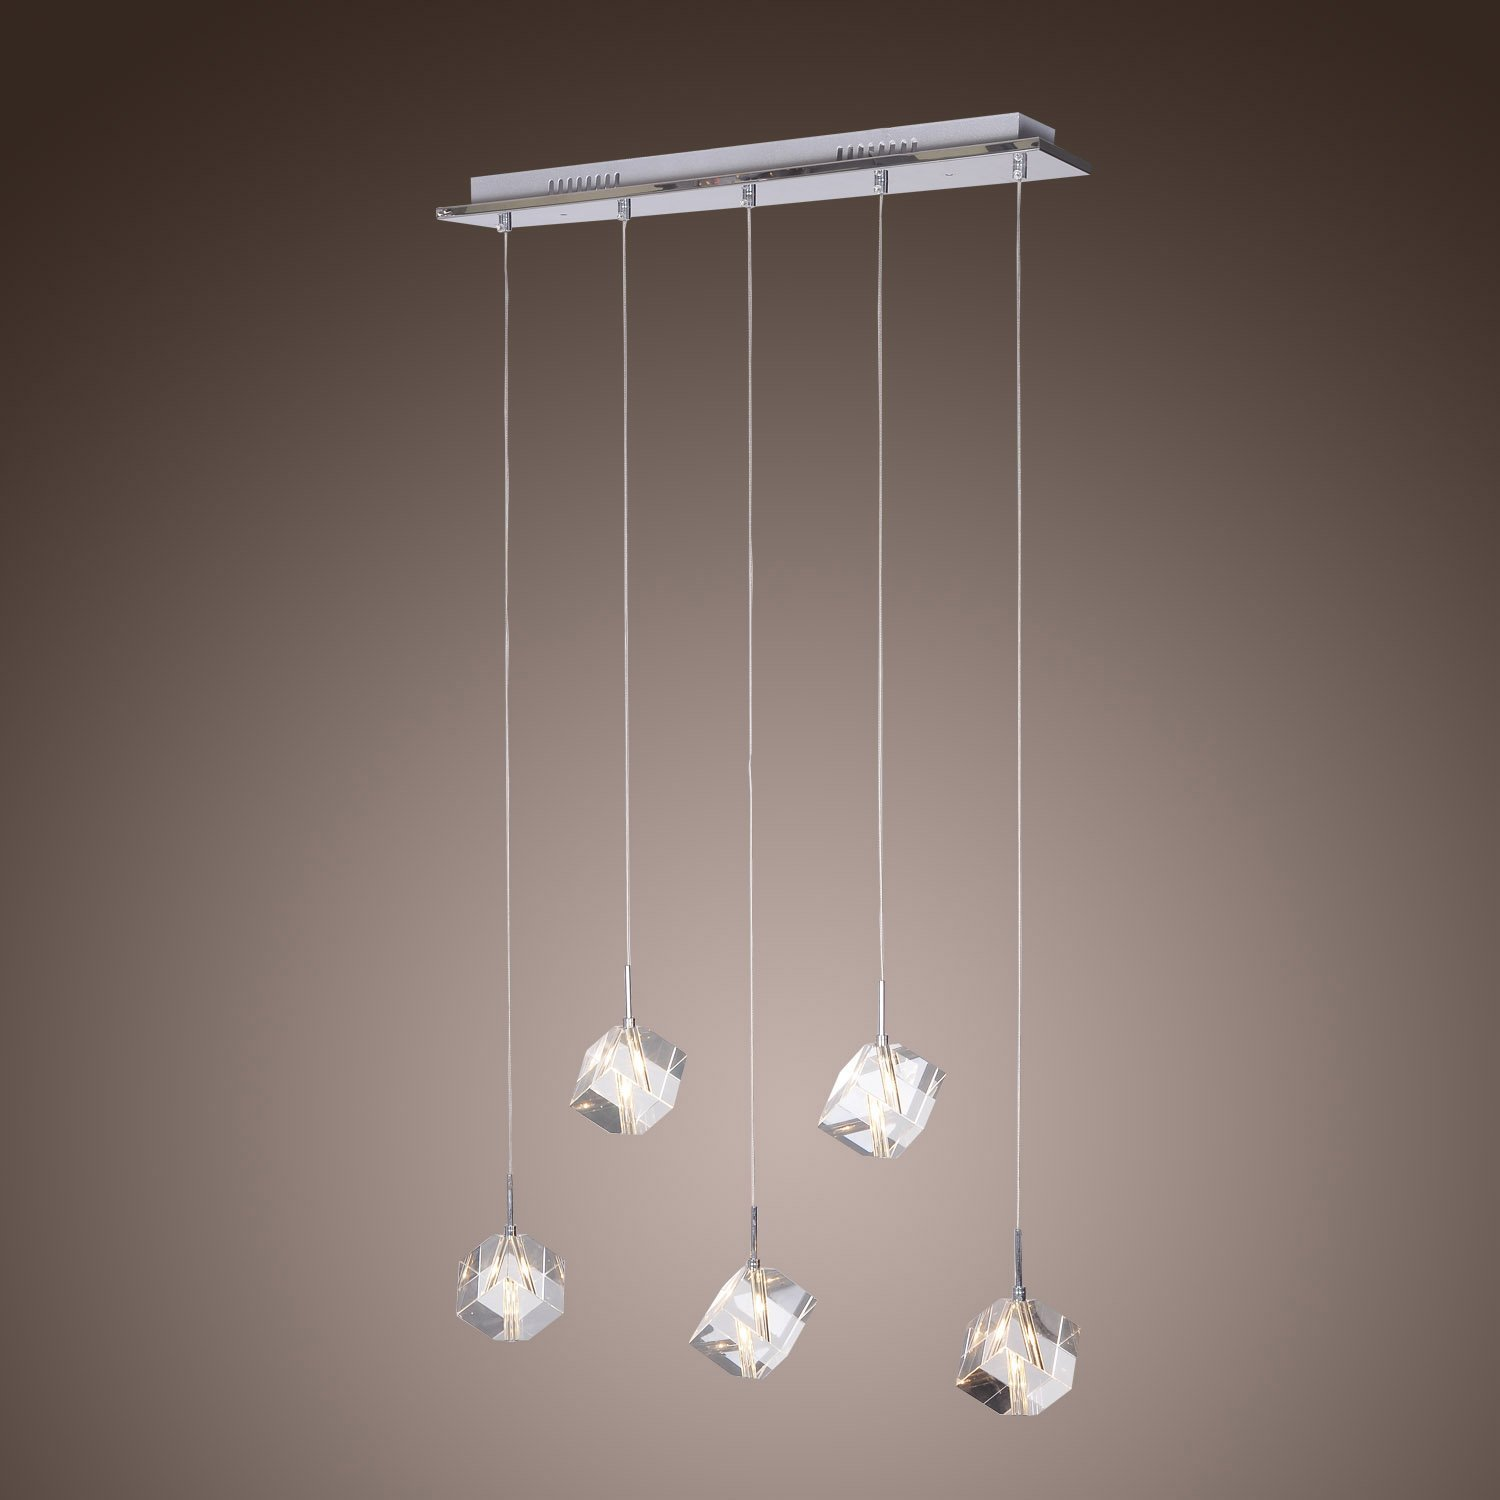 Get quotations · lightinthebox k9 crystal bar pendant light with 5 lights modern home ceiling light fixture flush